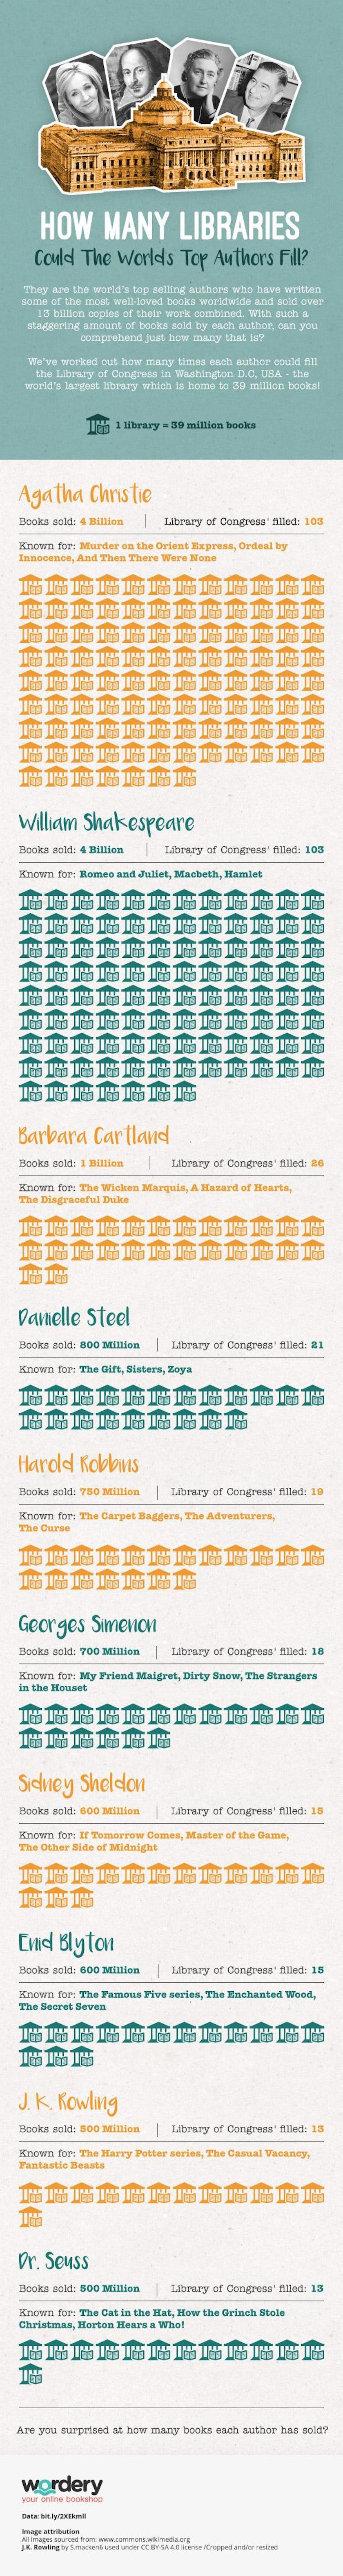 How many times could books of the top selling authors fill the Library of Congress - infographic by Wordery